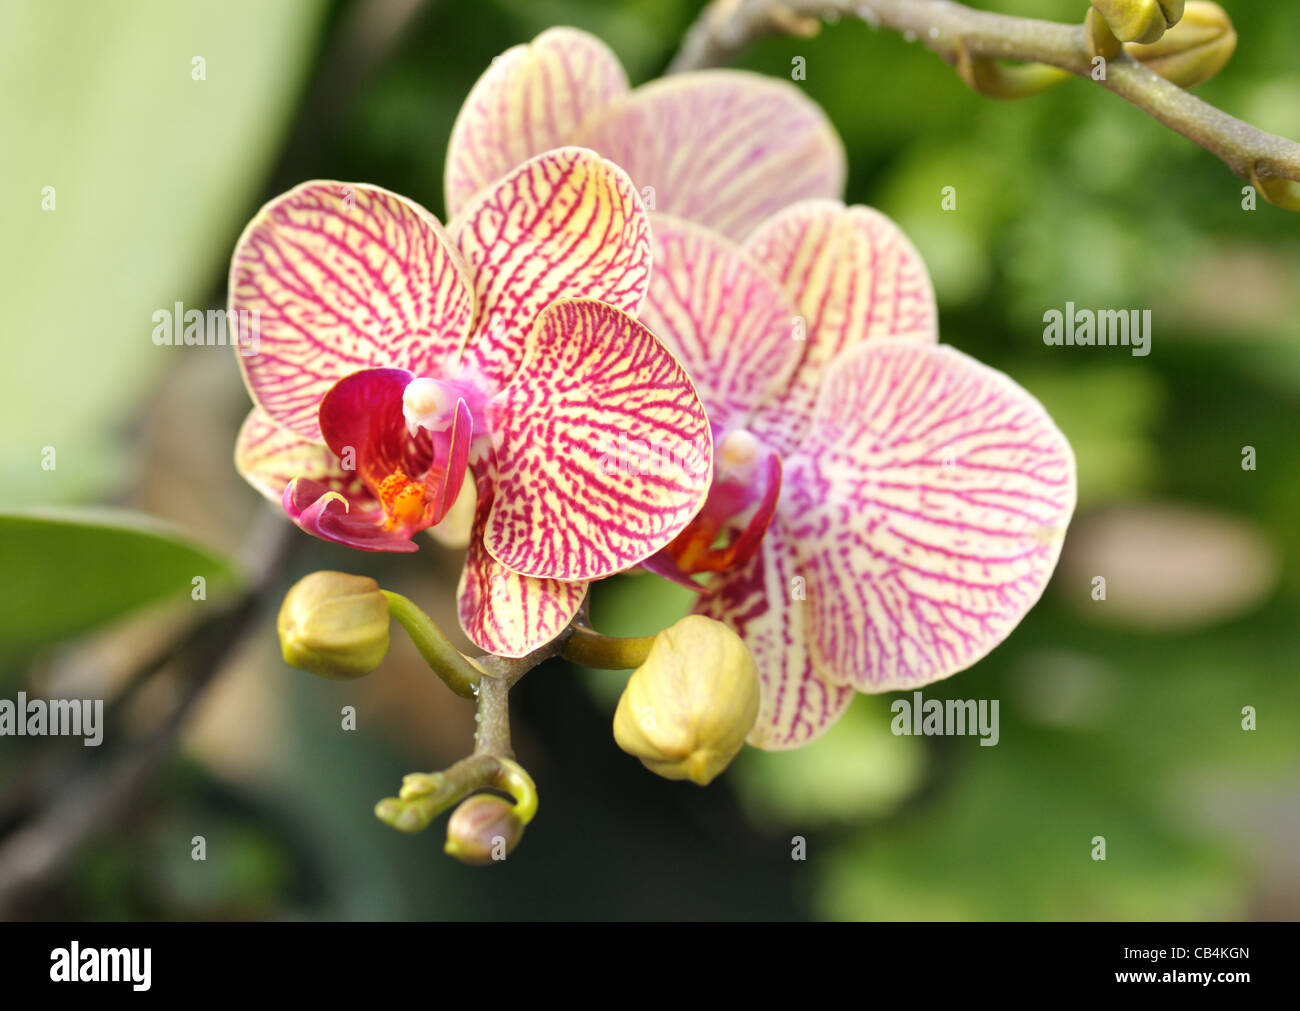 Beautiful pink yellow orchid flowers stock photos beautiful pink pink and yellow beautiful orchid flowers and buds stock image izmirmasajfo